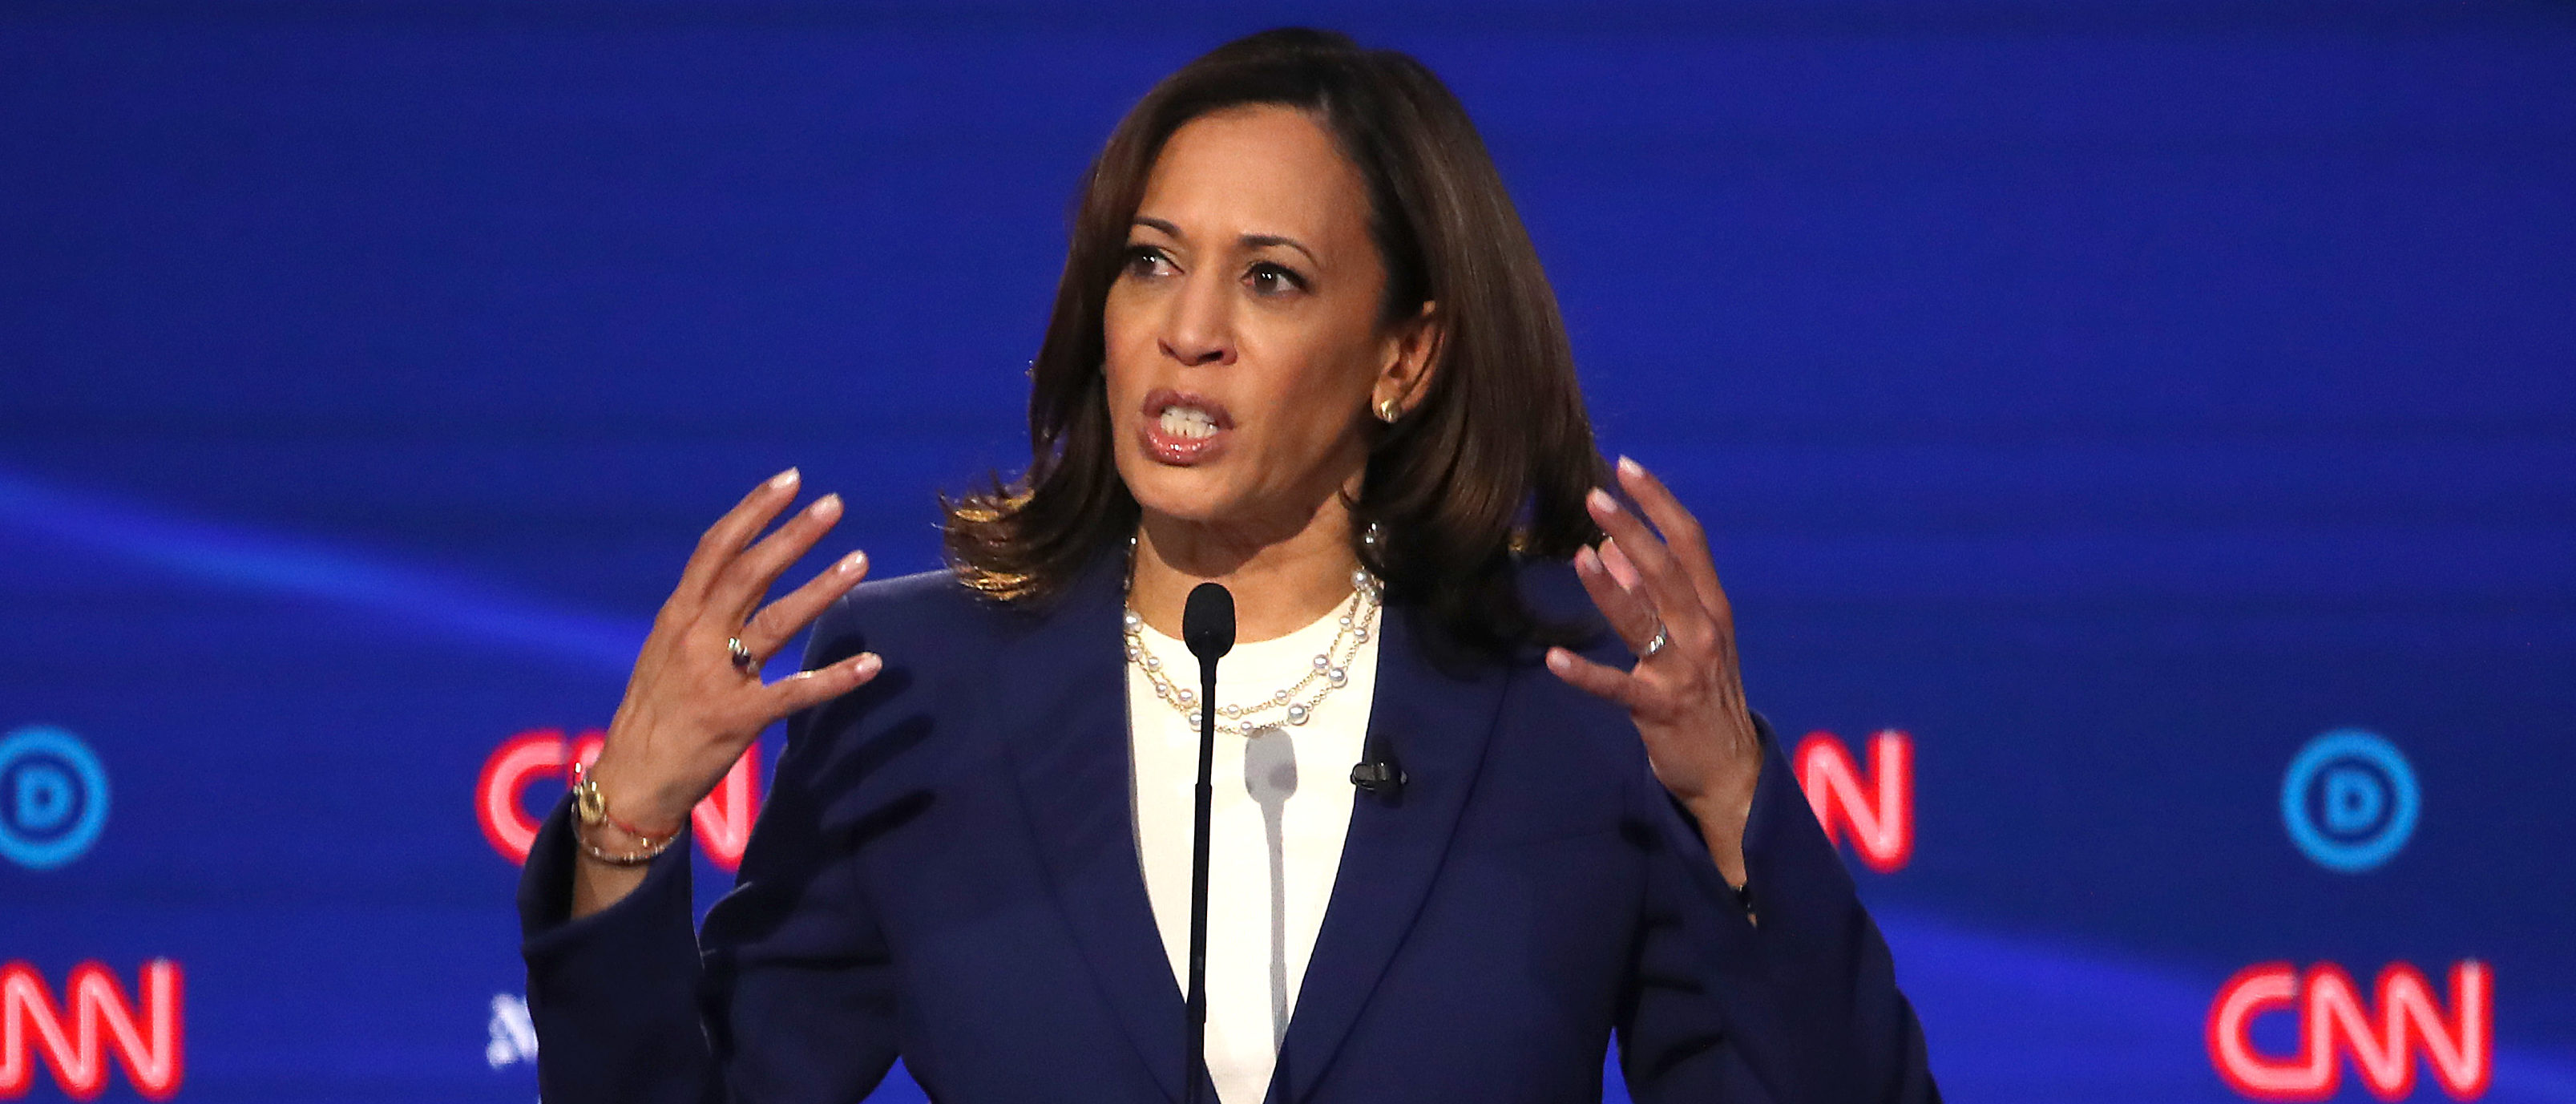 Sen. Kamala Harris speaks during the Democratic presidential debate at Otterbein University on Oct. 15, 2019 in Westerville, Ohio. (Photo by Win McNamee/Getty Images)